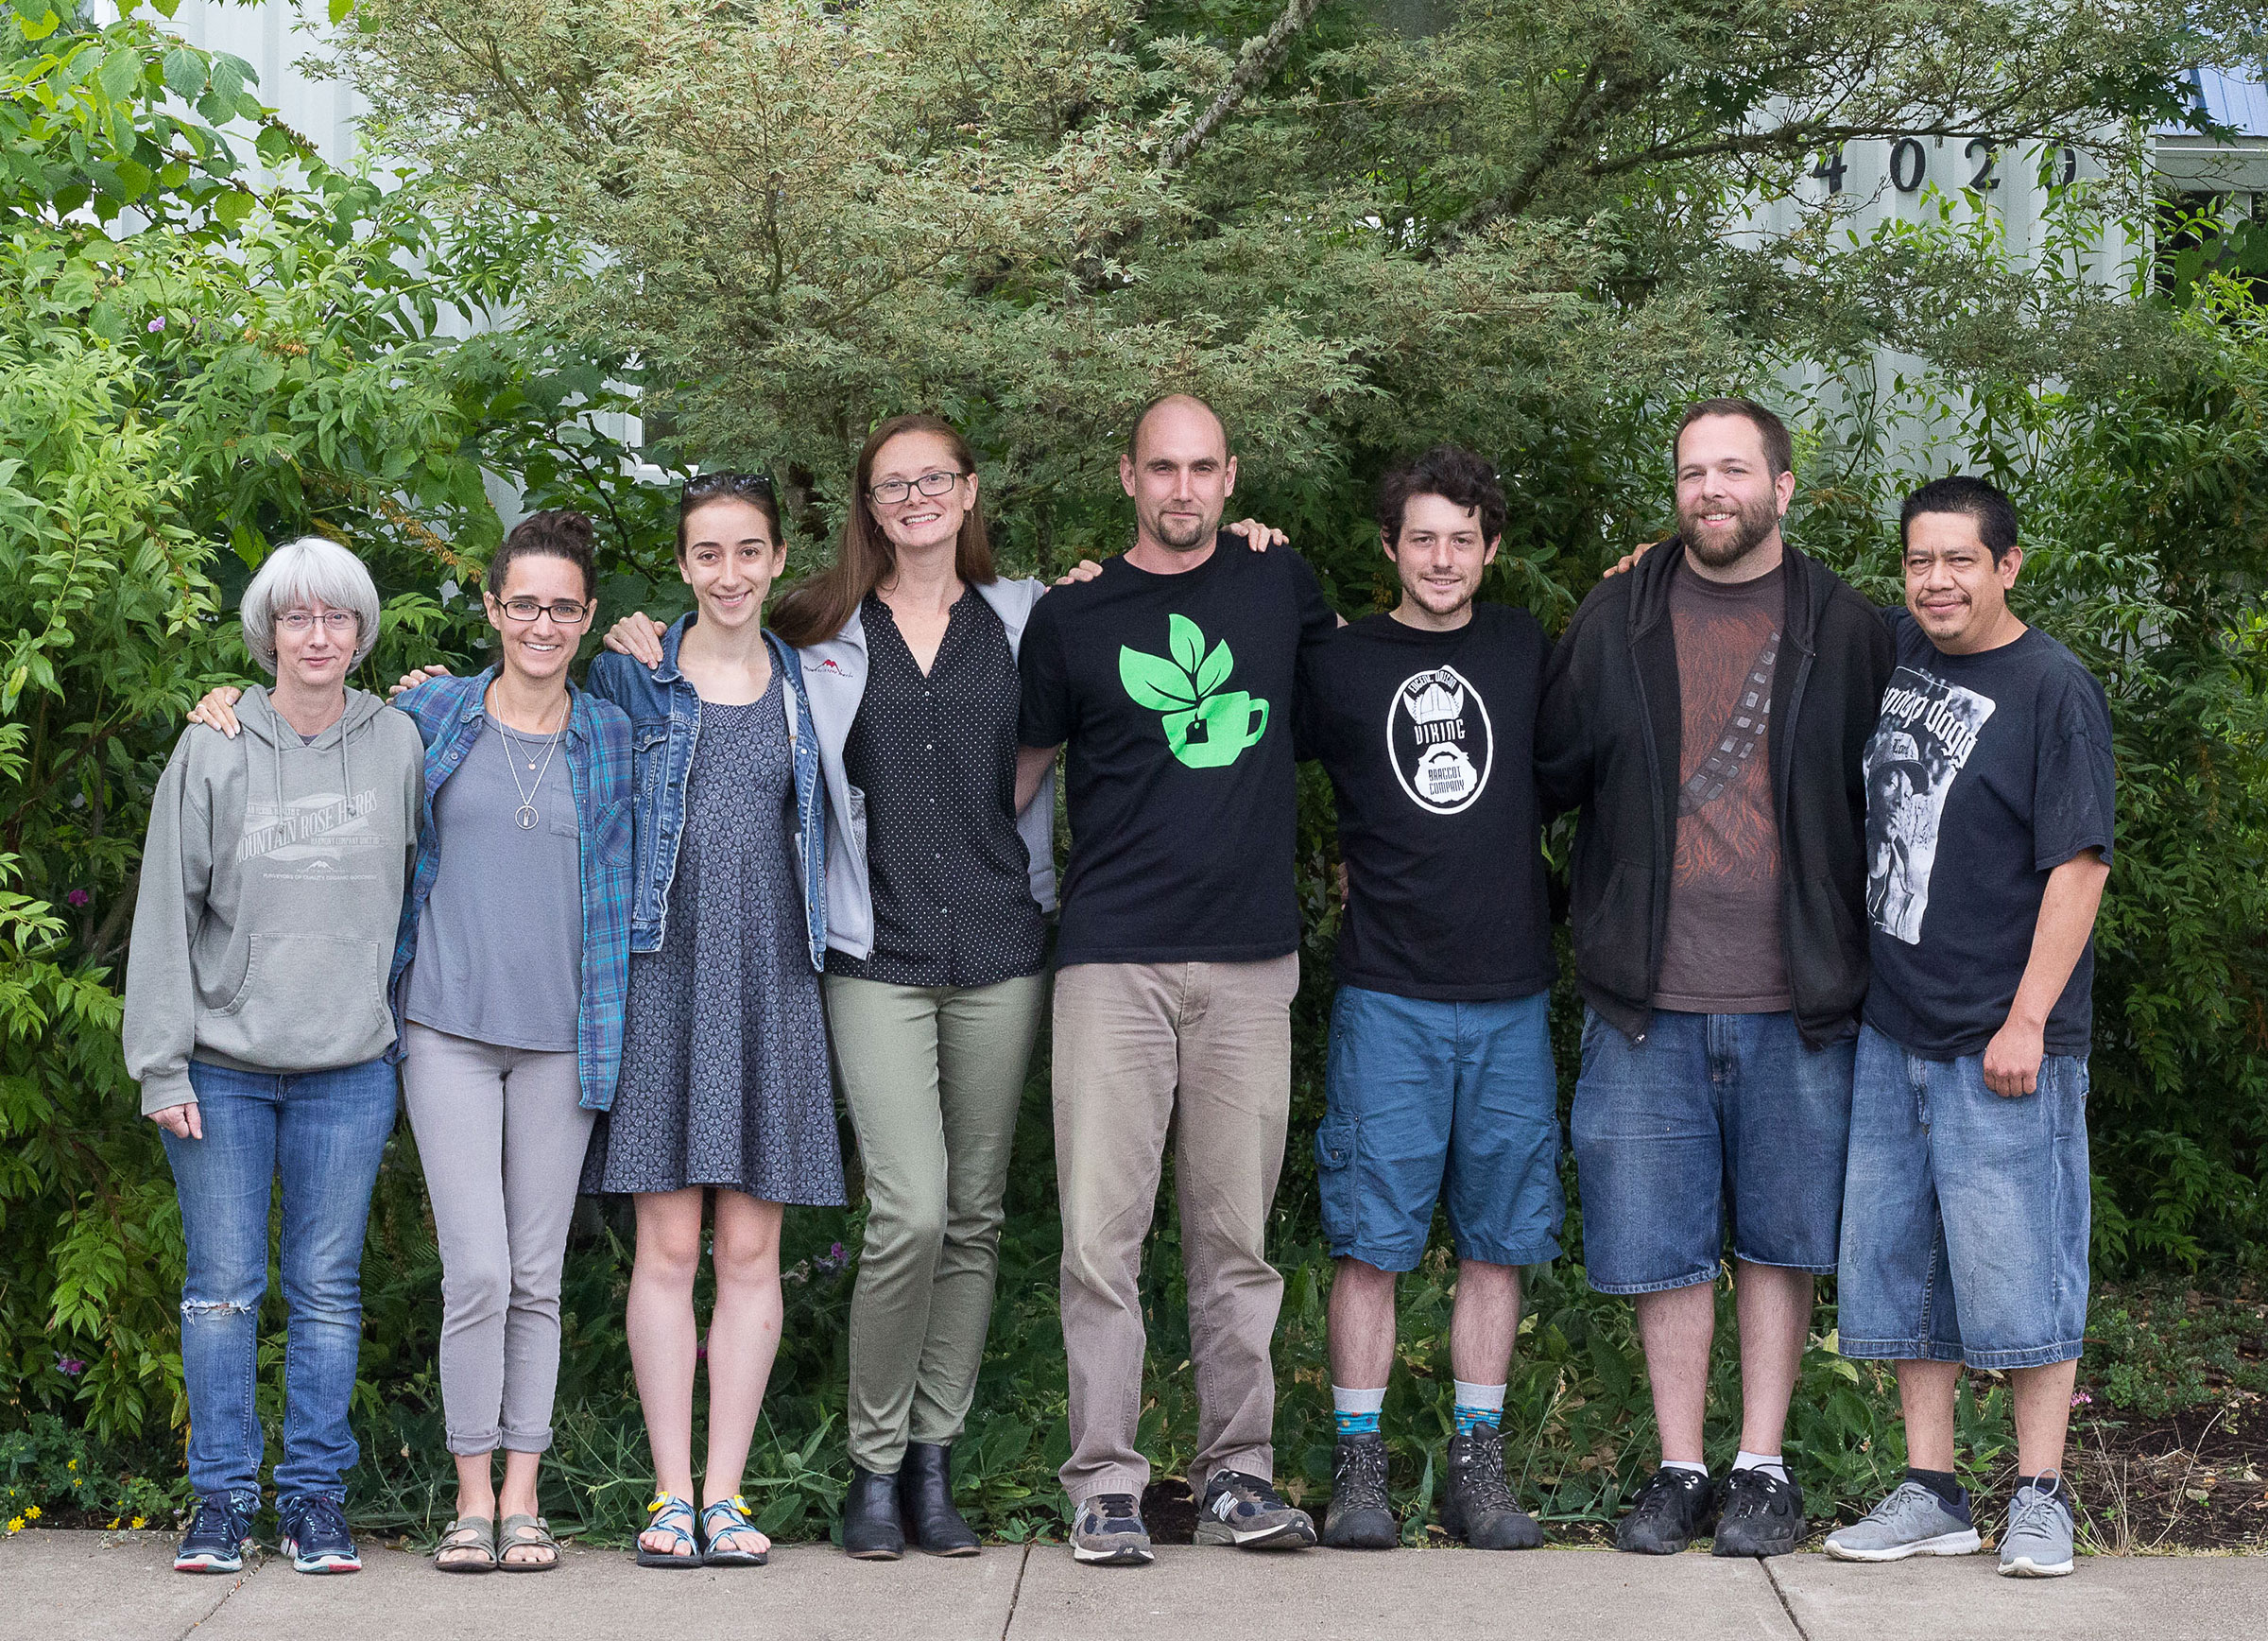 Employees at Mountain Rose Herbs meet for a Green Team meeting, standing together outdoors